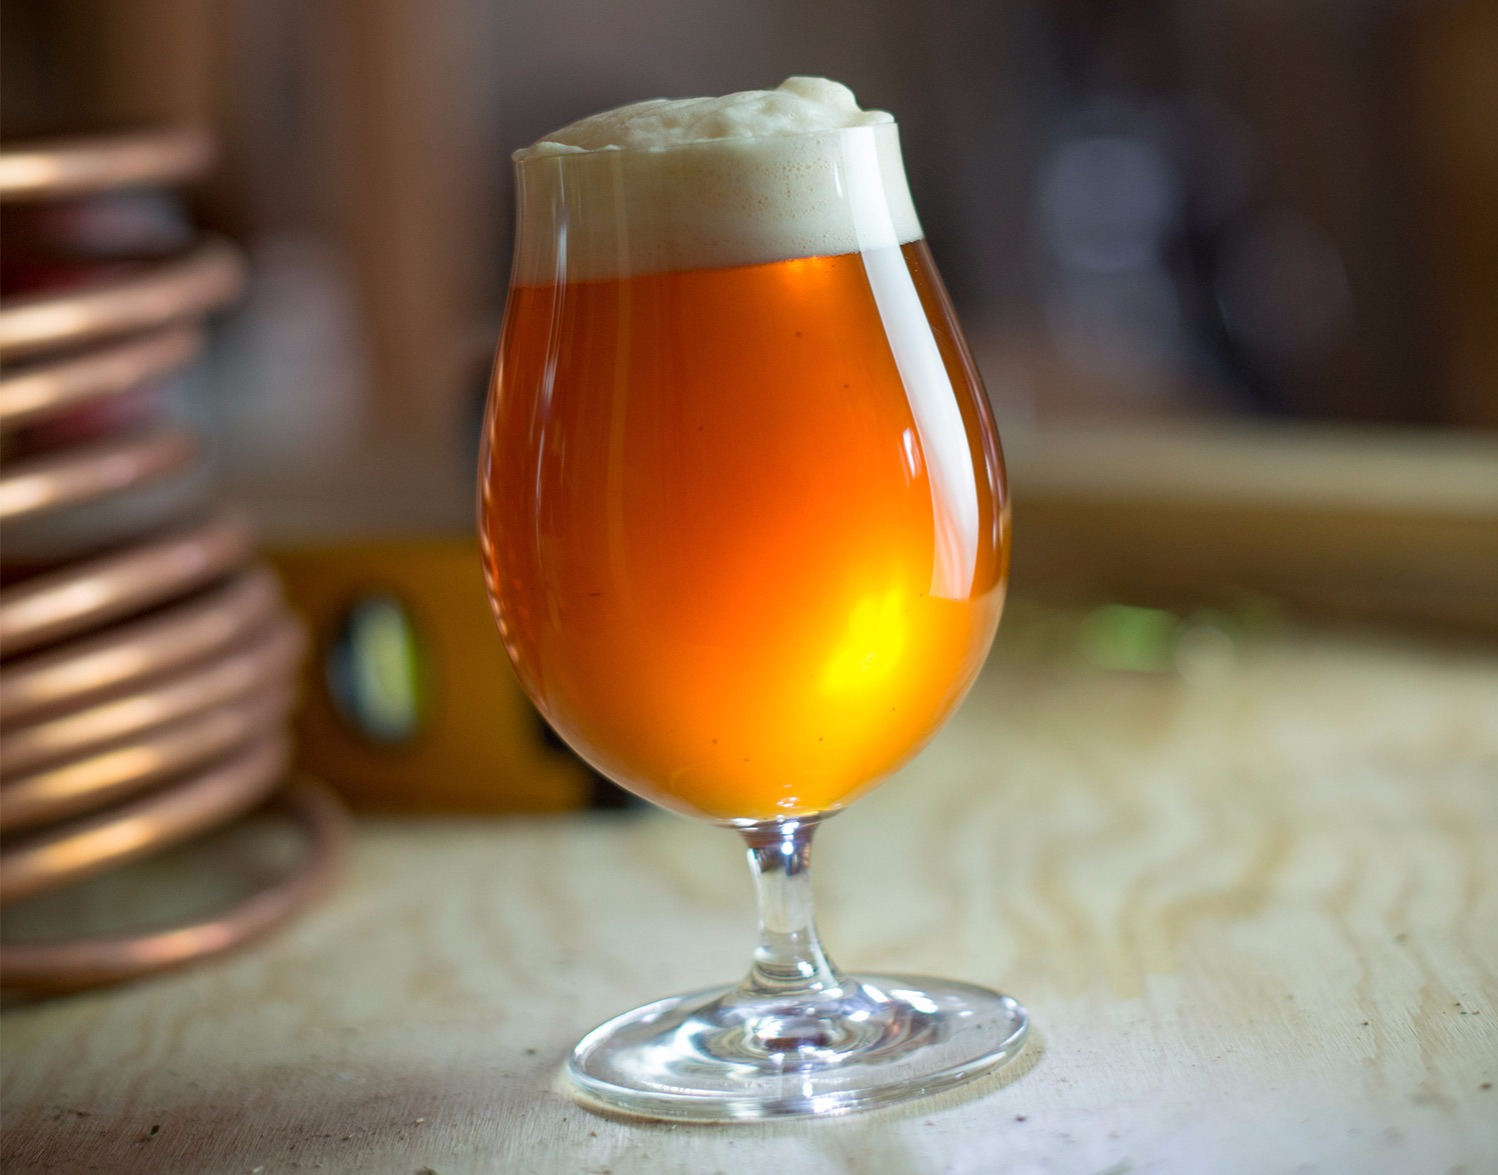 Beer Image for Saison Du Mont G II provided by American Homebrewers Association